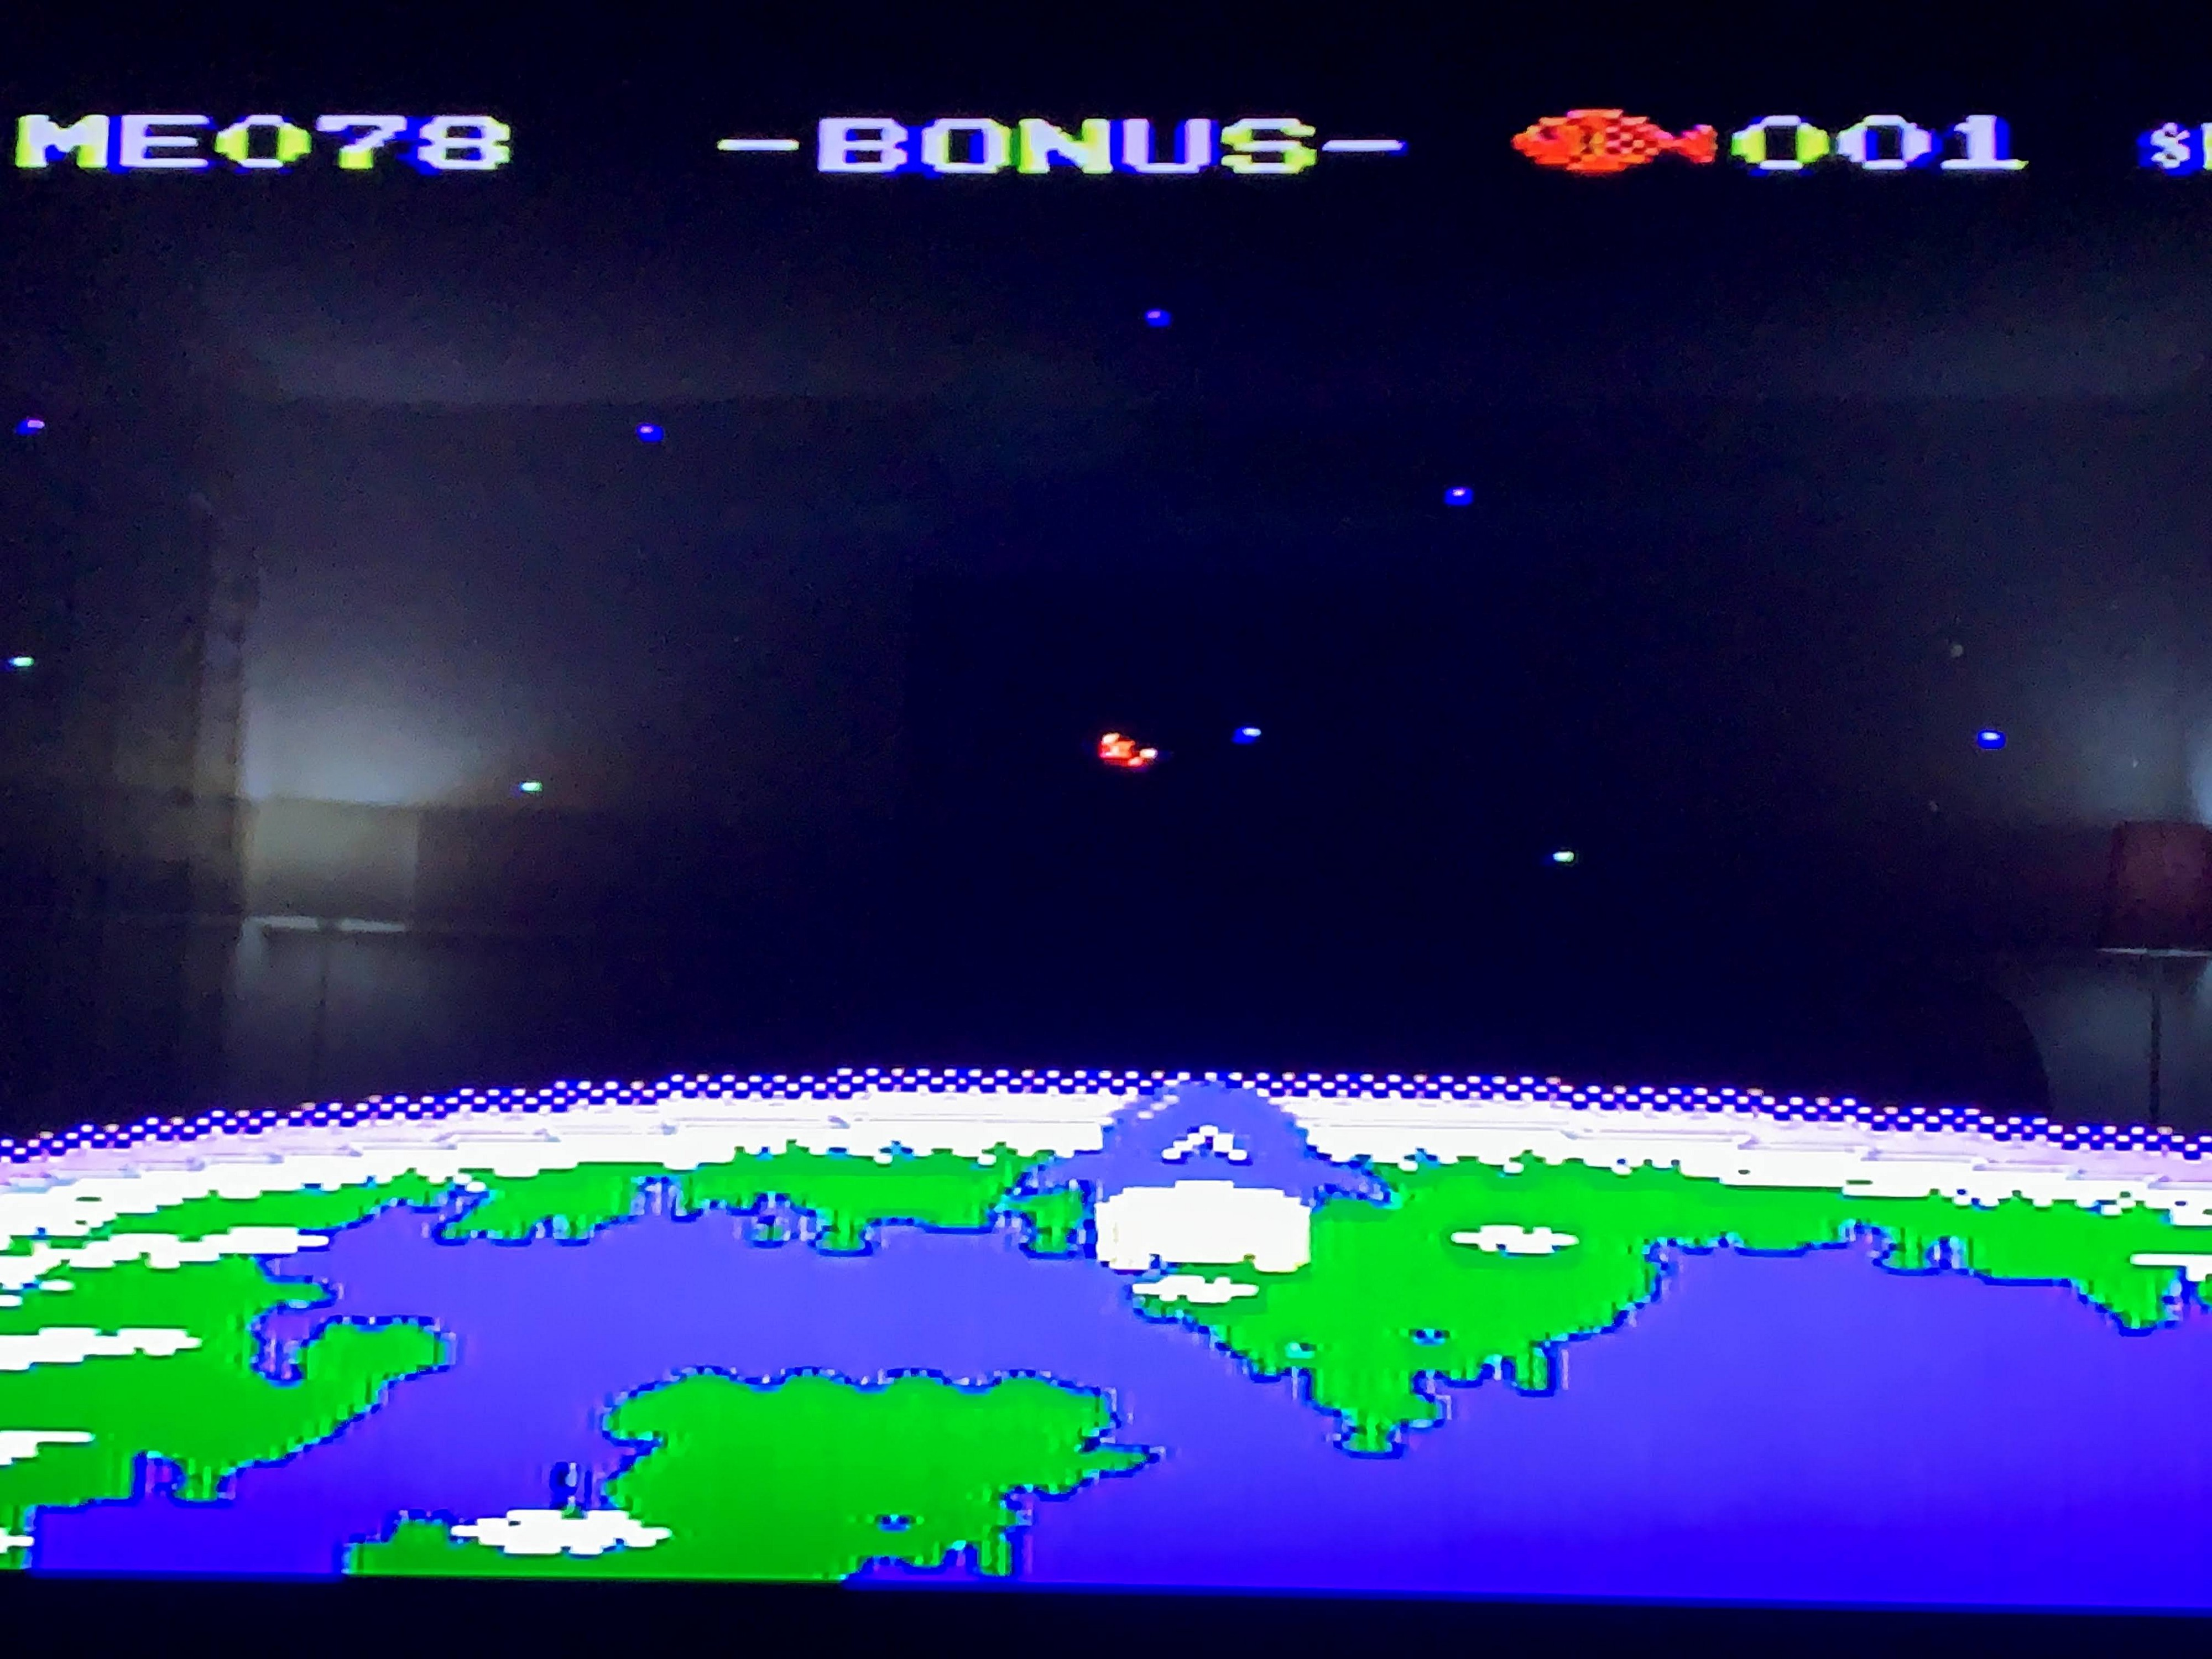 Bonus round shows a penguin flying over the earth with a fish coming towards him.